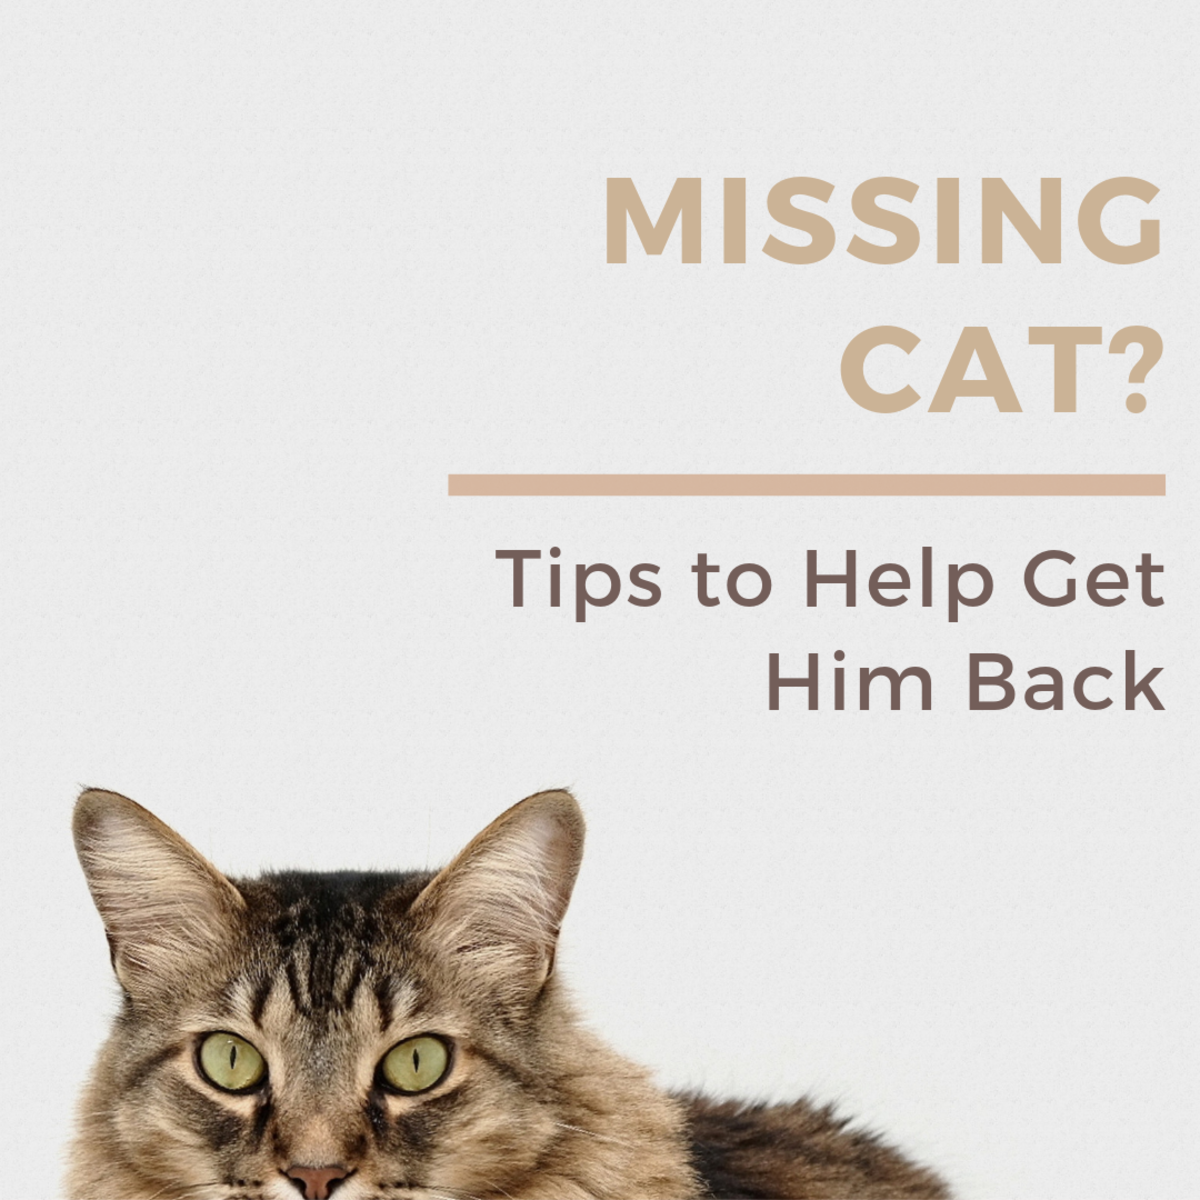 10 Helpful Tips for How to Find a Lost or Missing Cat